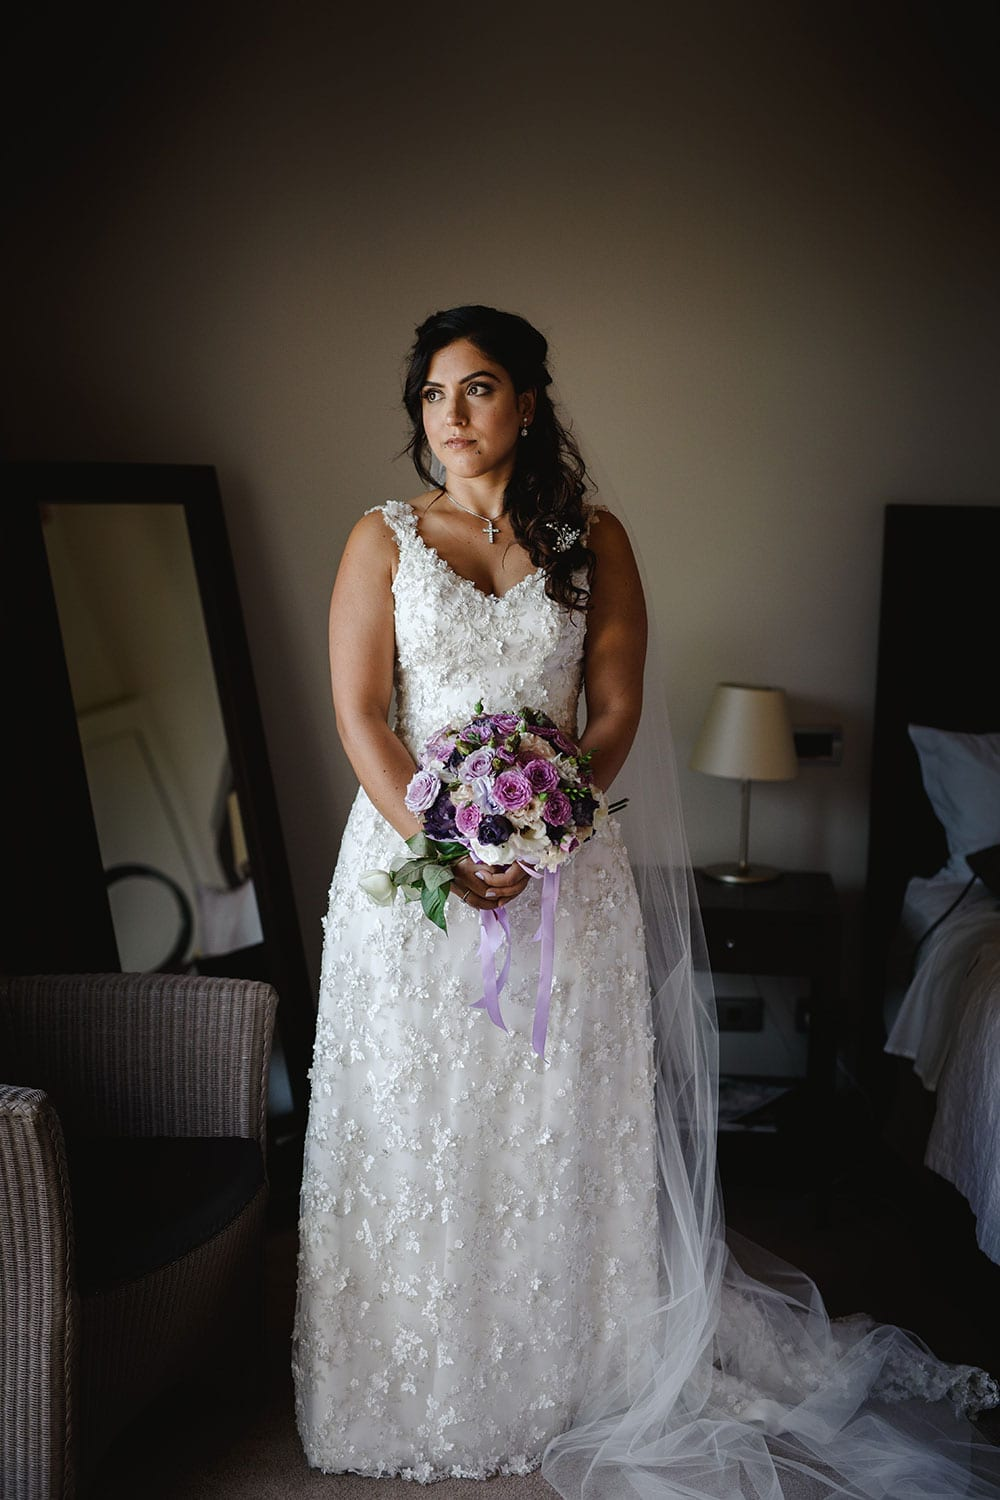 Real Weddings | Vinka Design | Real Brides Wearing Vinka Gowns | Ayesha and Nick - Ayesha indoors wearing gorgeous beaded floral lace, which fitted her to perfection.